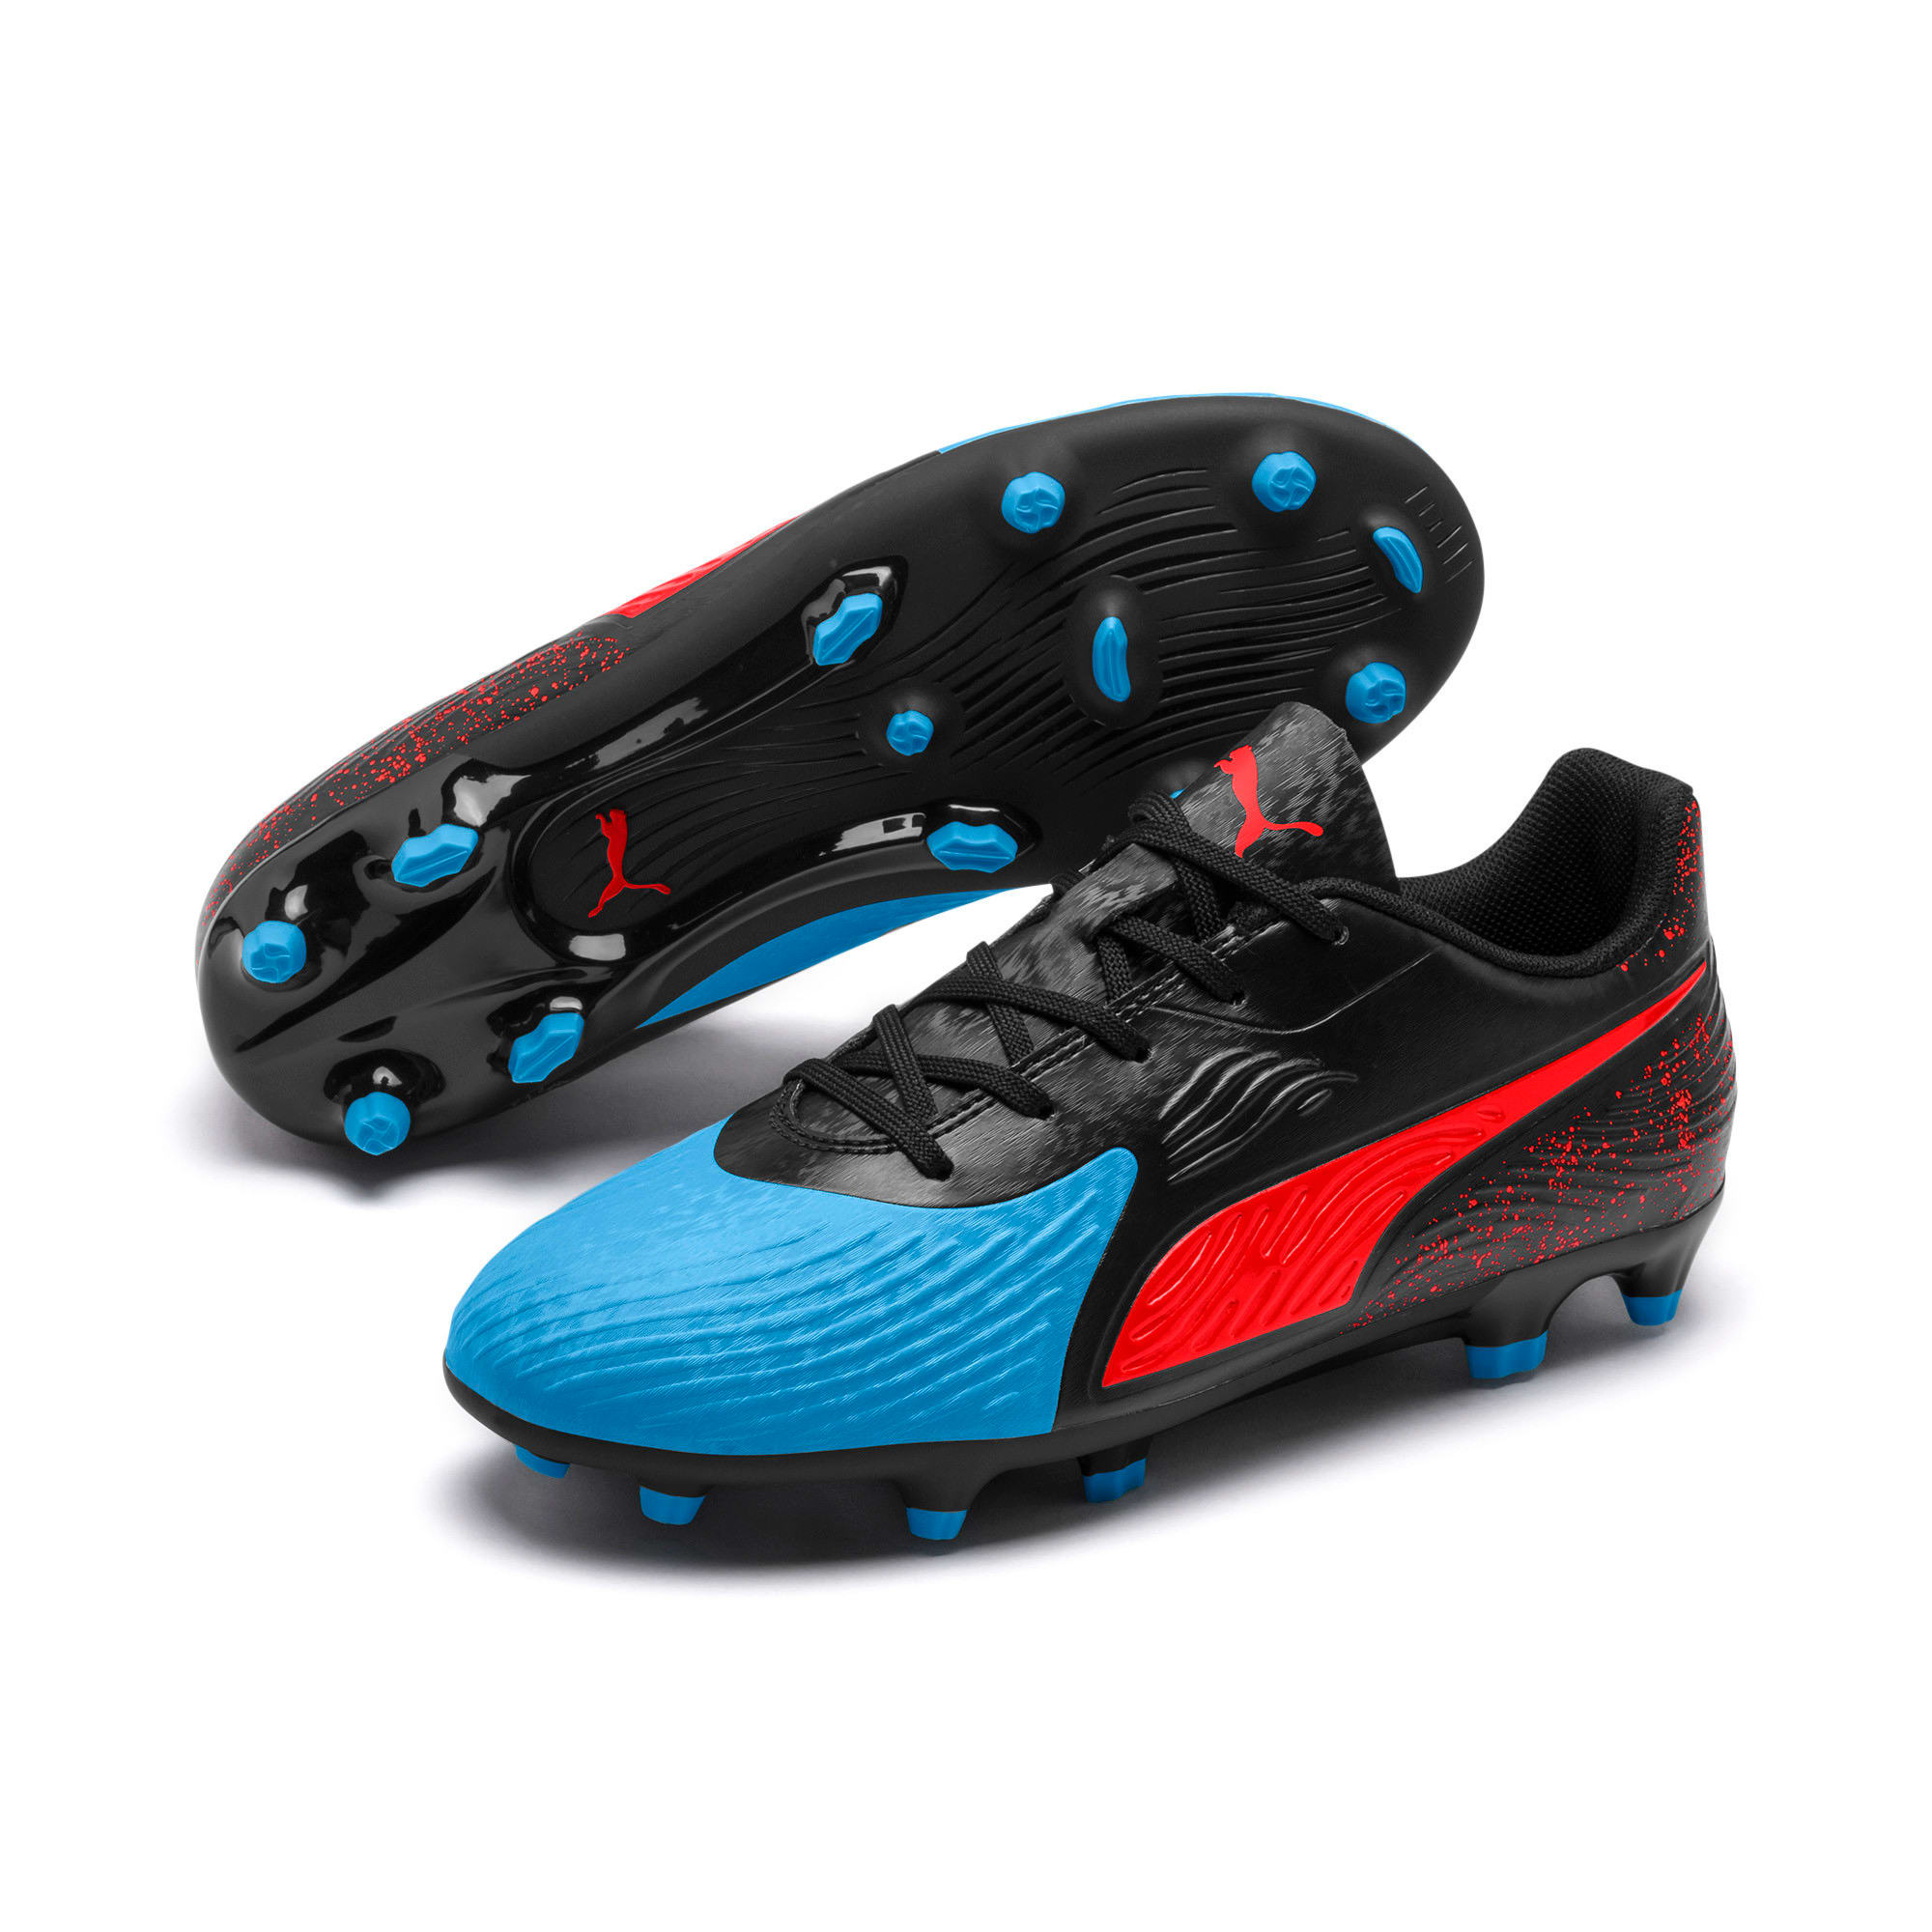 Thumbnail 2 of PUMA ONE 19.4 FG/AG Soccer Cleats JR, Bleu Azur-Red Blast-Black, medium